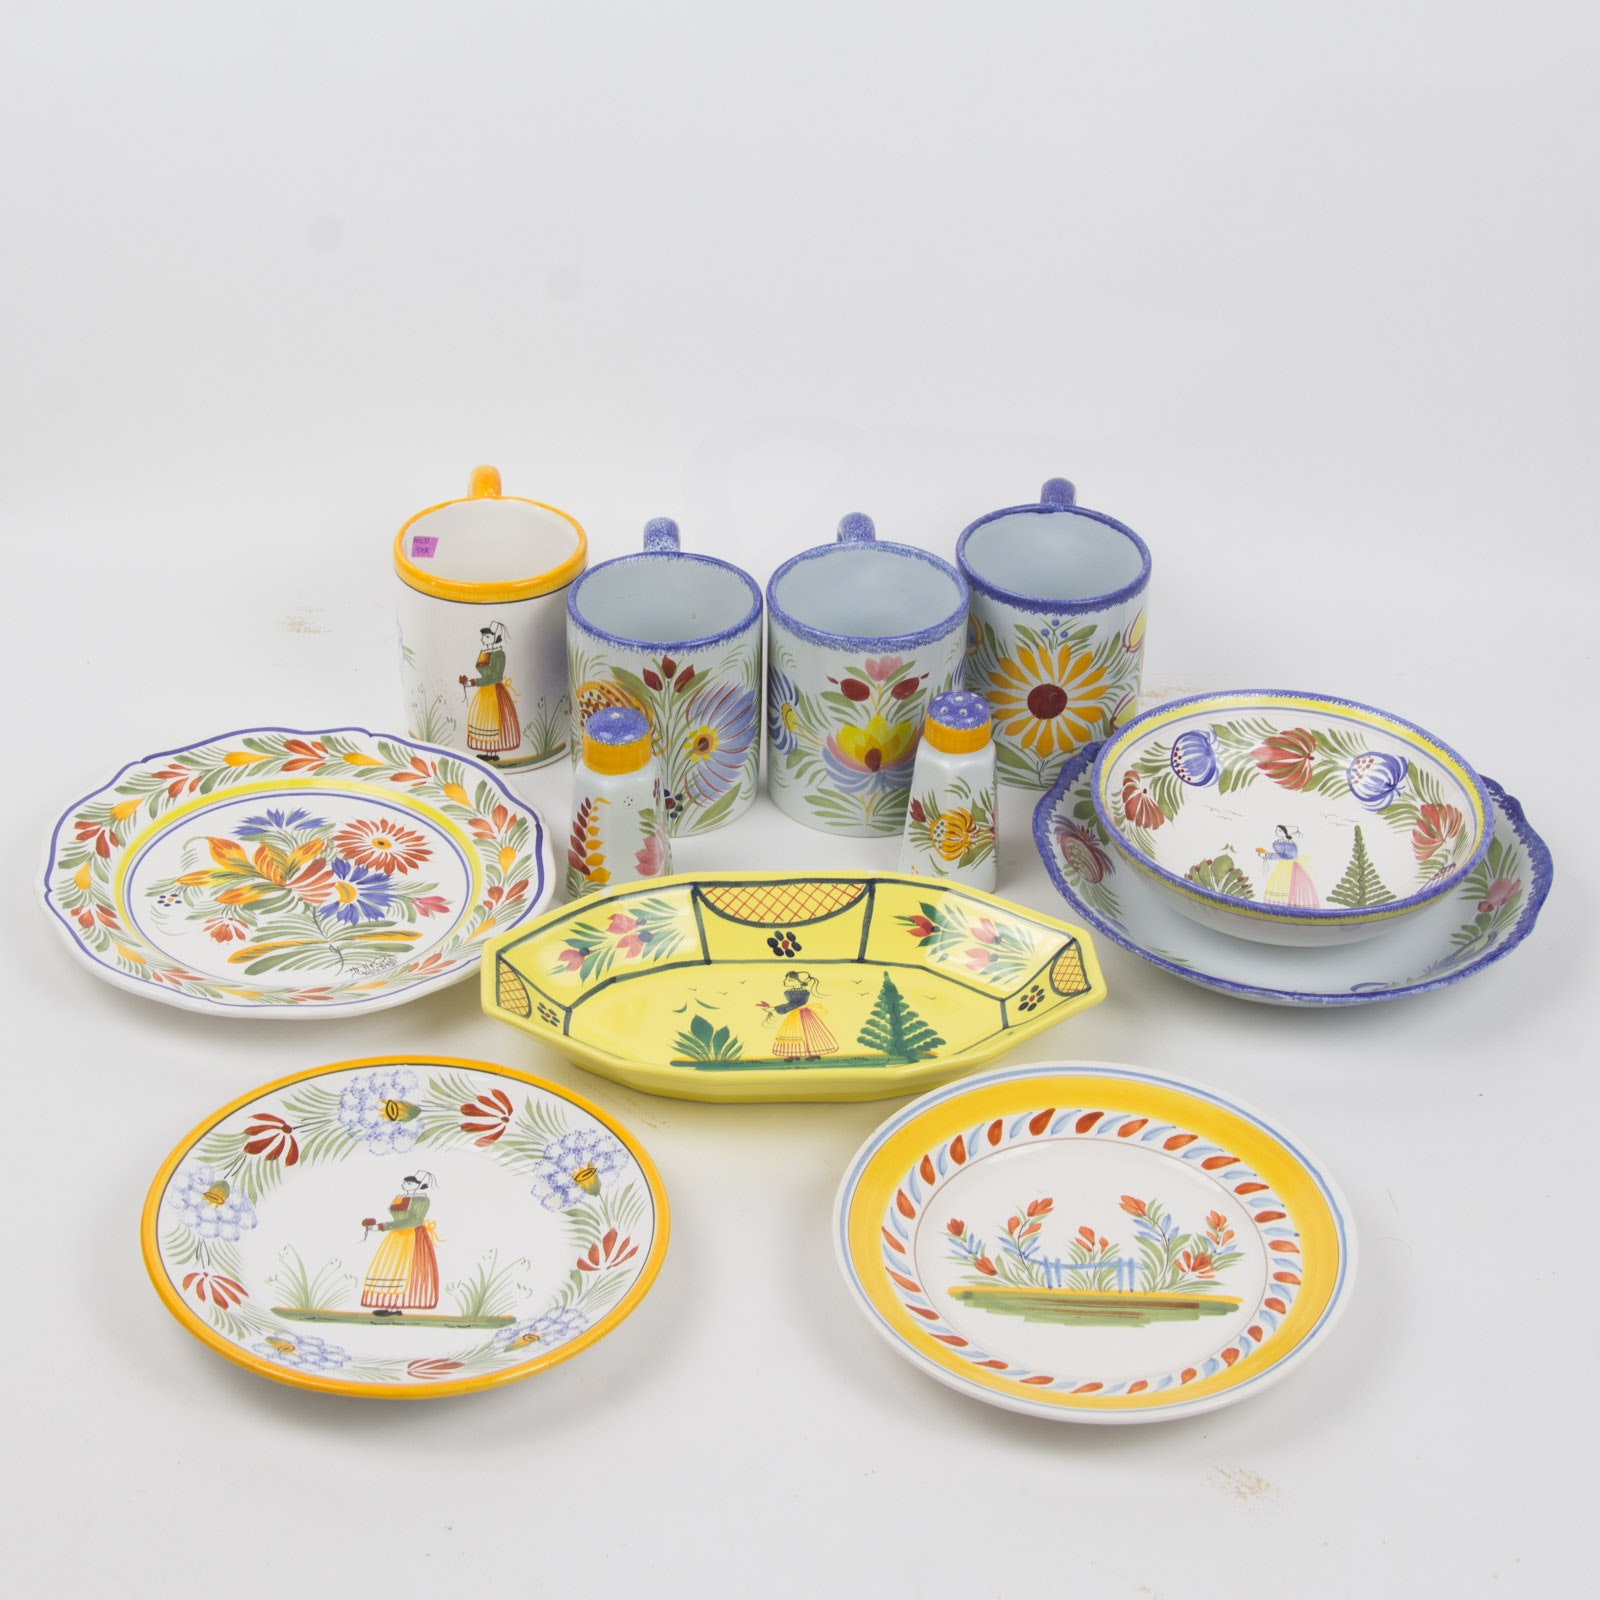 Henriot Quimper Hand-Painted Faïence  Collection